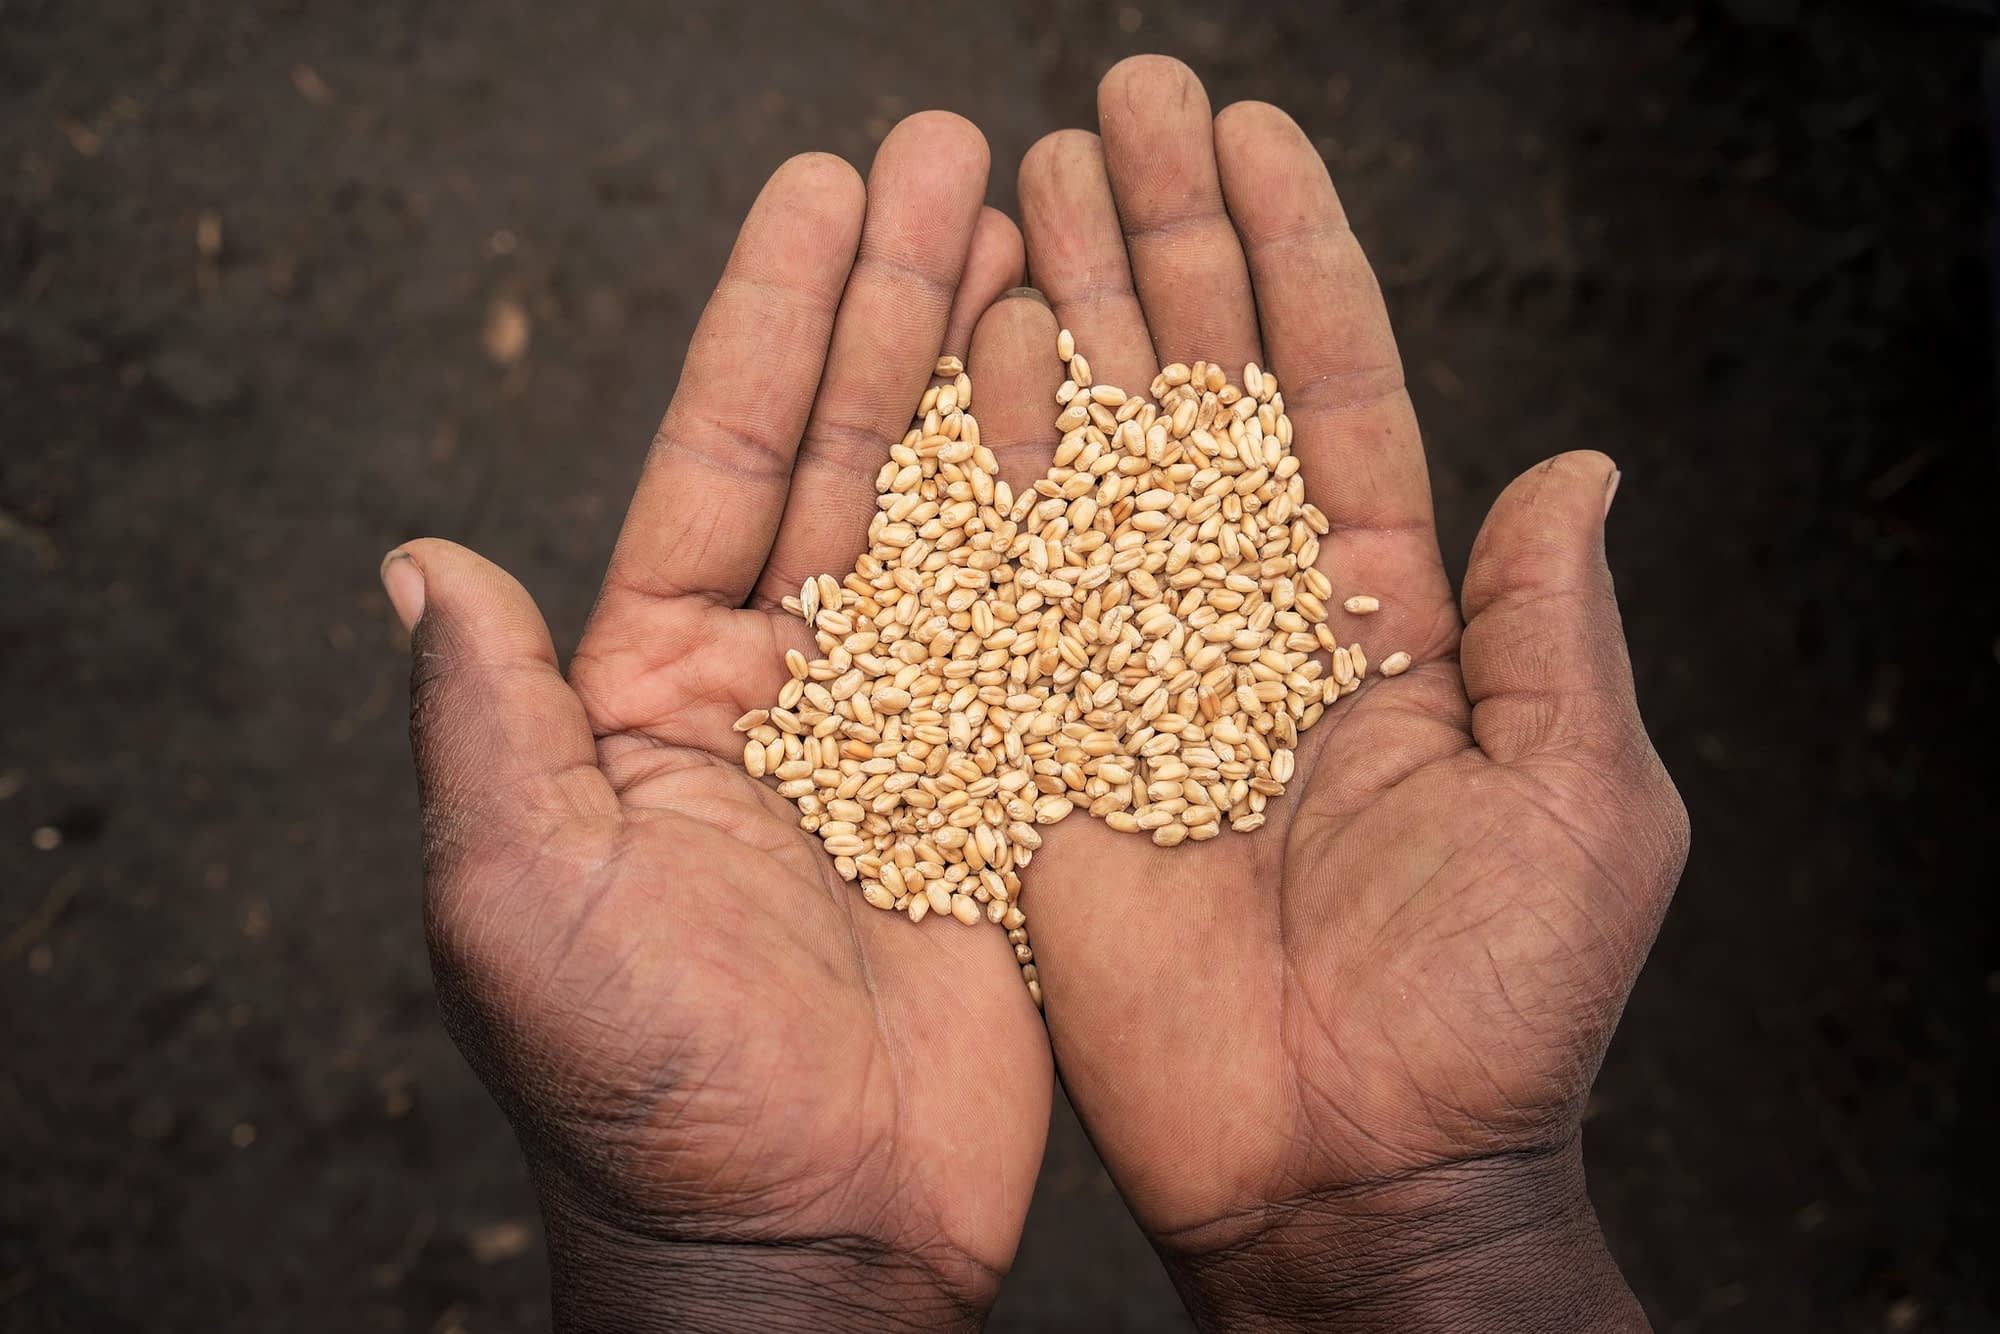 Hands hold wheat grain from harvest near Belbur, Nakuru, Kenya. (Photo: Peter Lowe/CIMMYT)